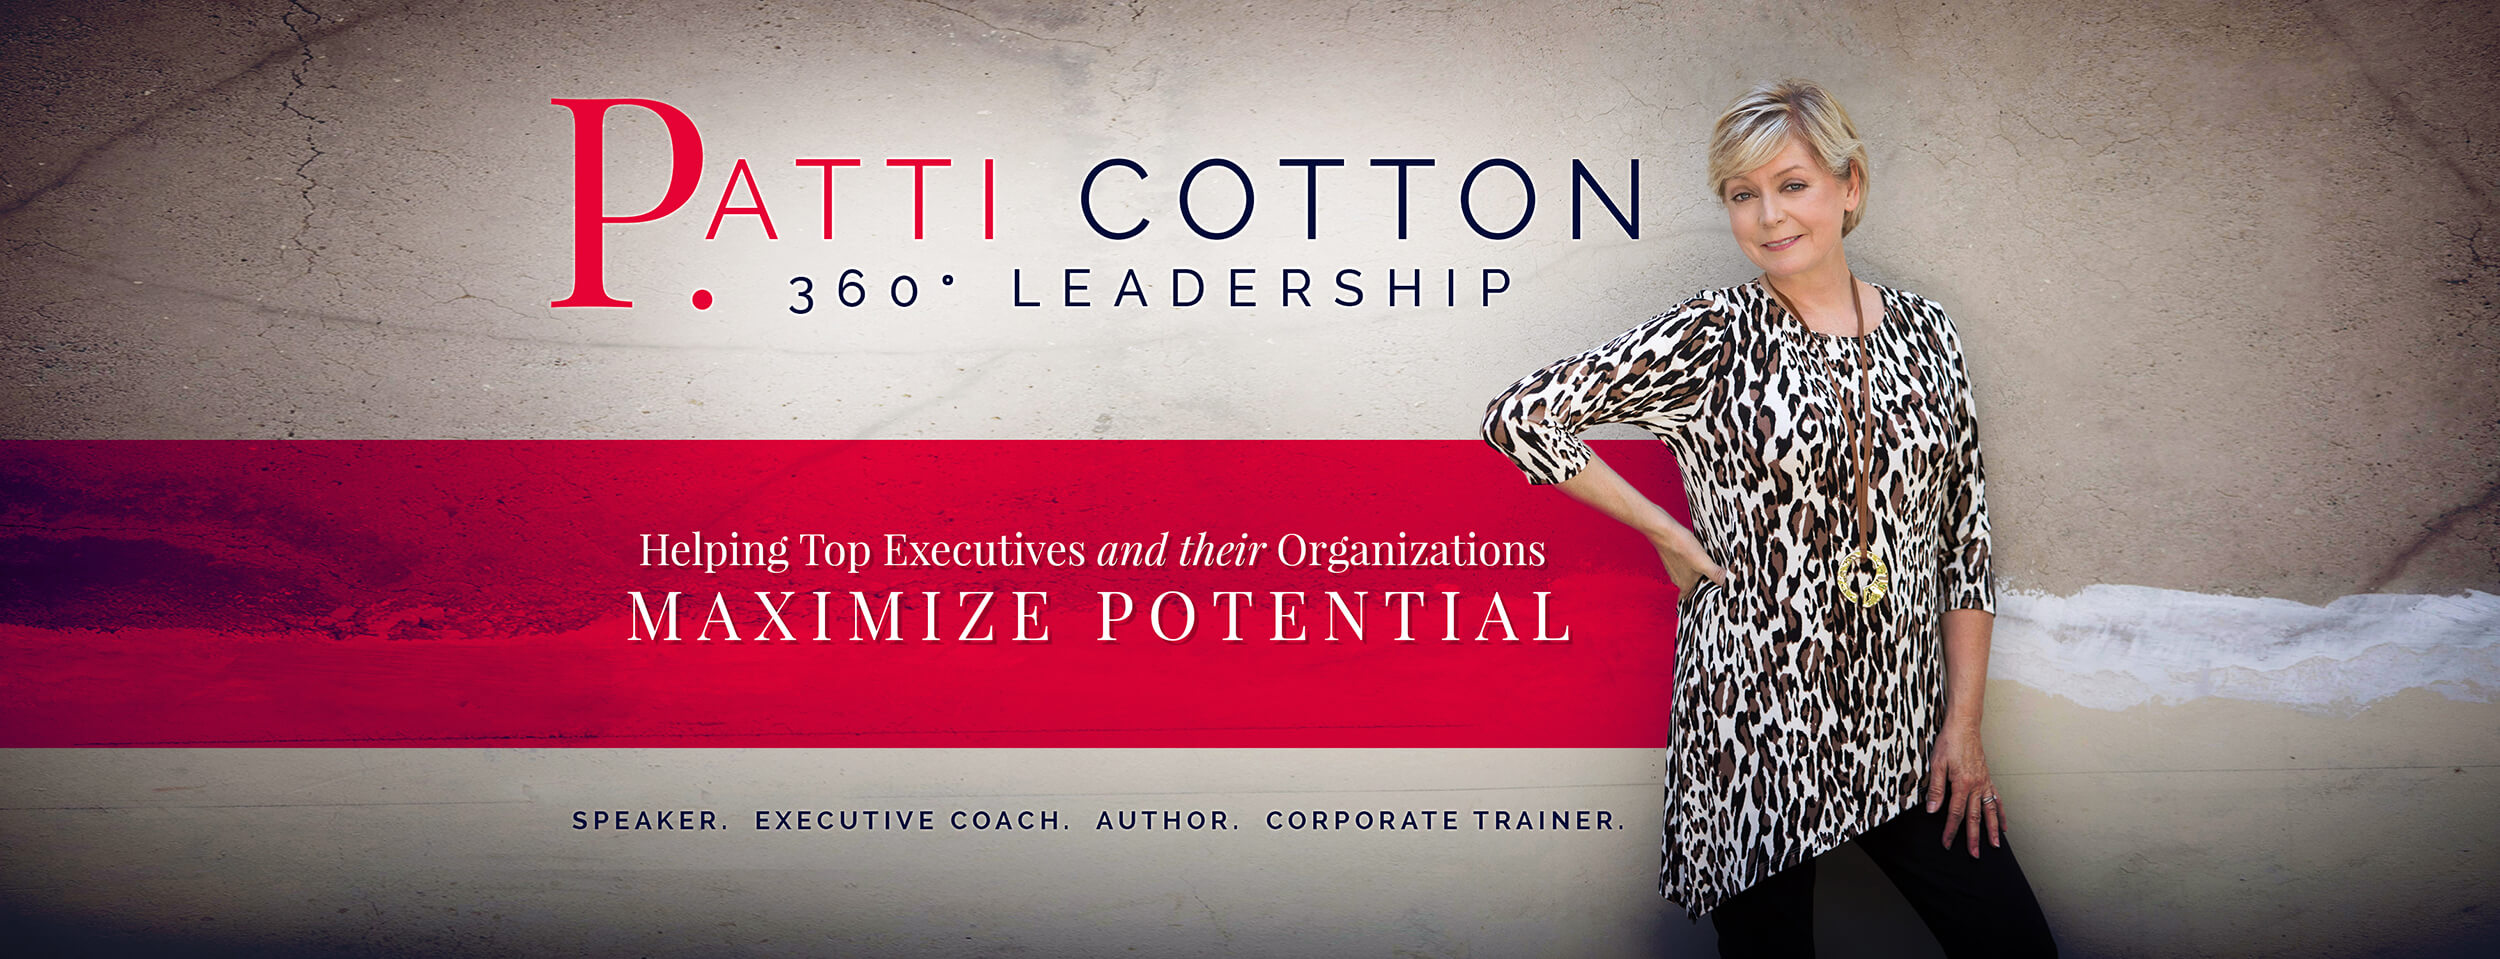 Patti Cotton - 360 Degree Leadership